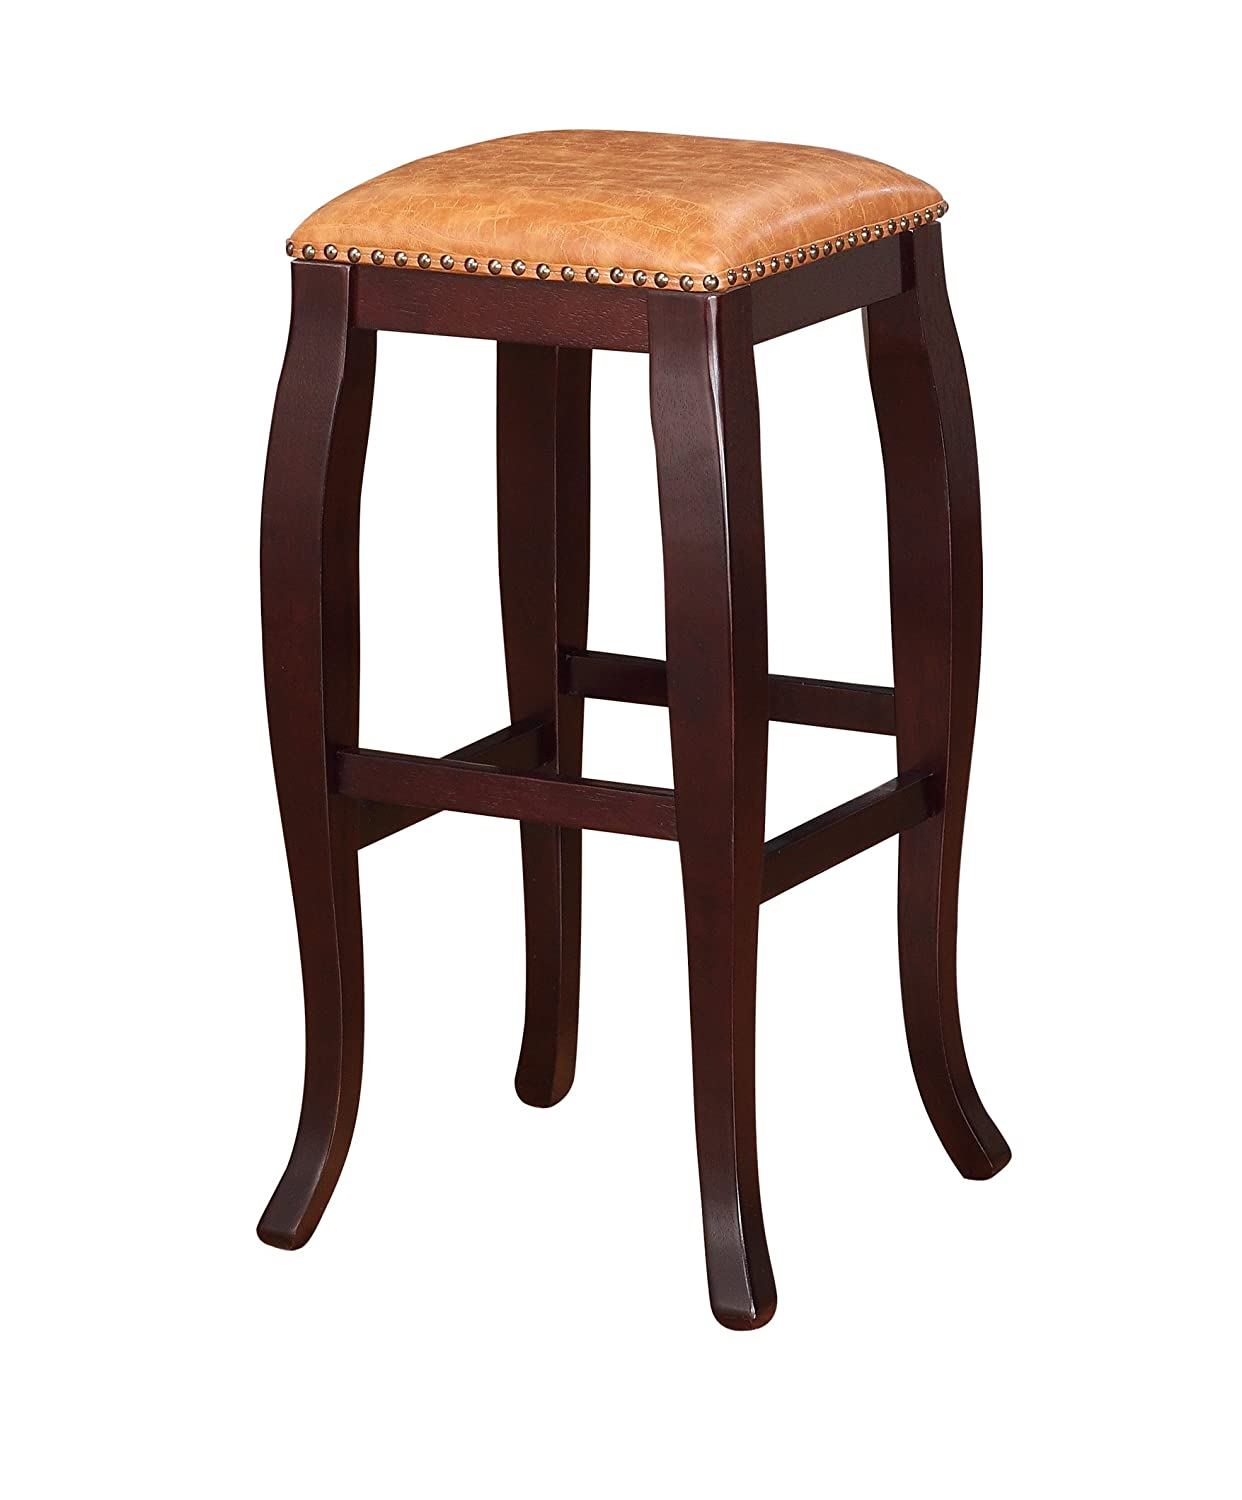 furniture stool square rotsen wood natural products